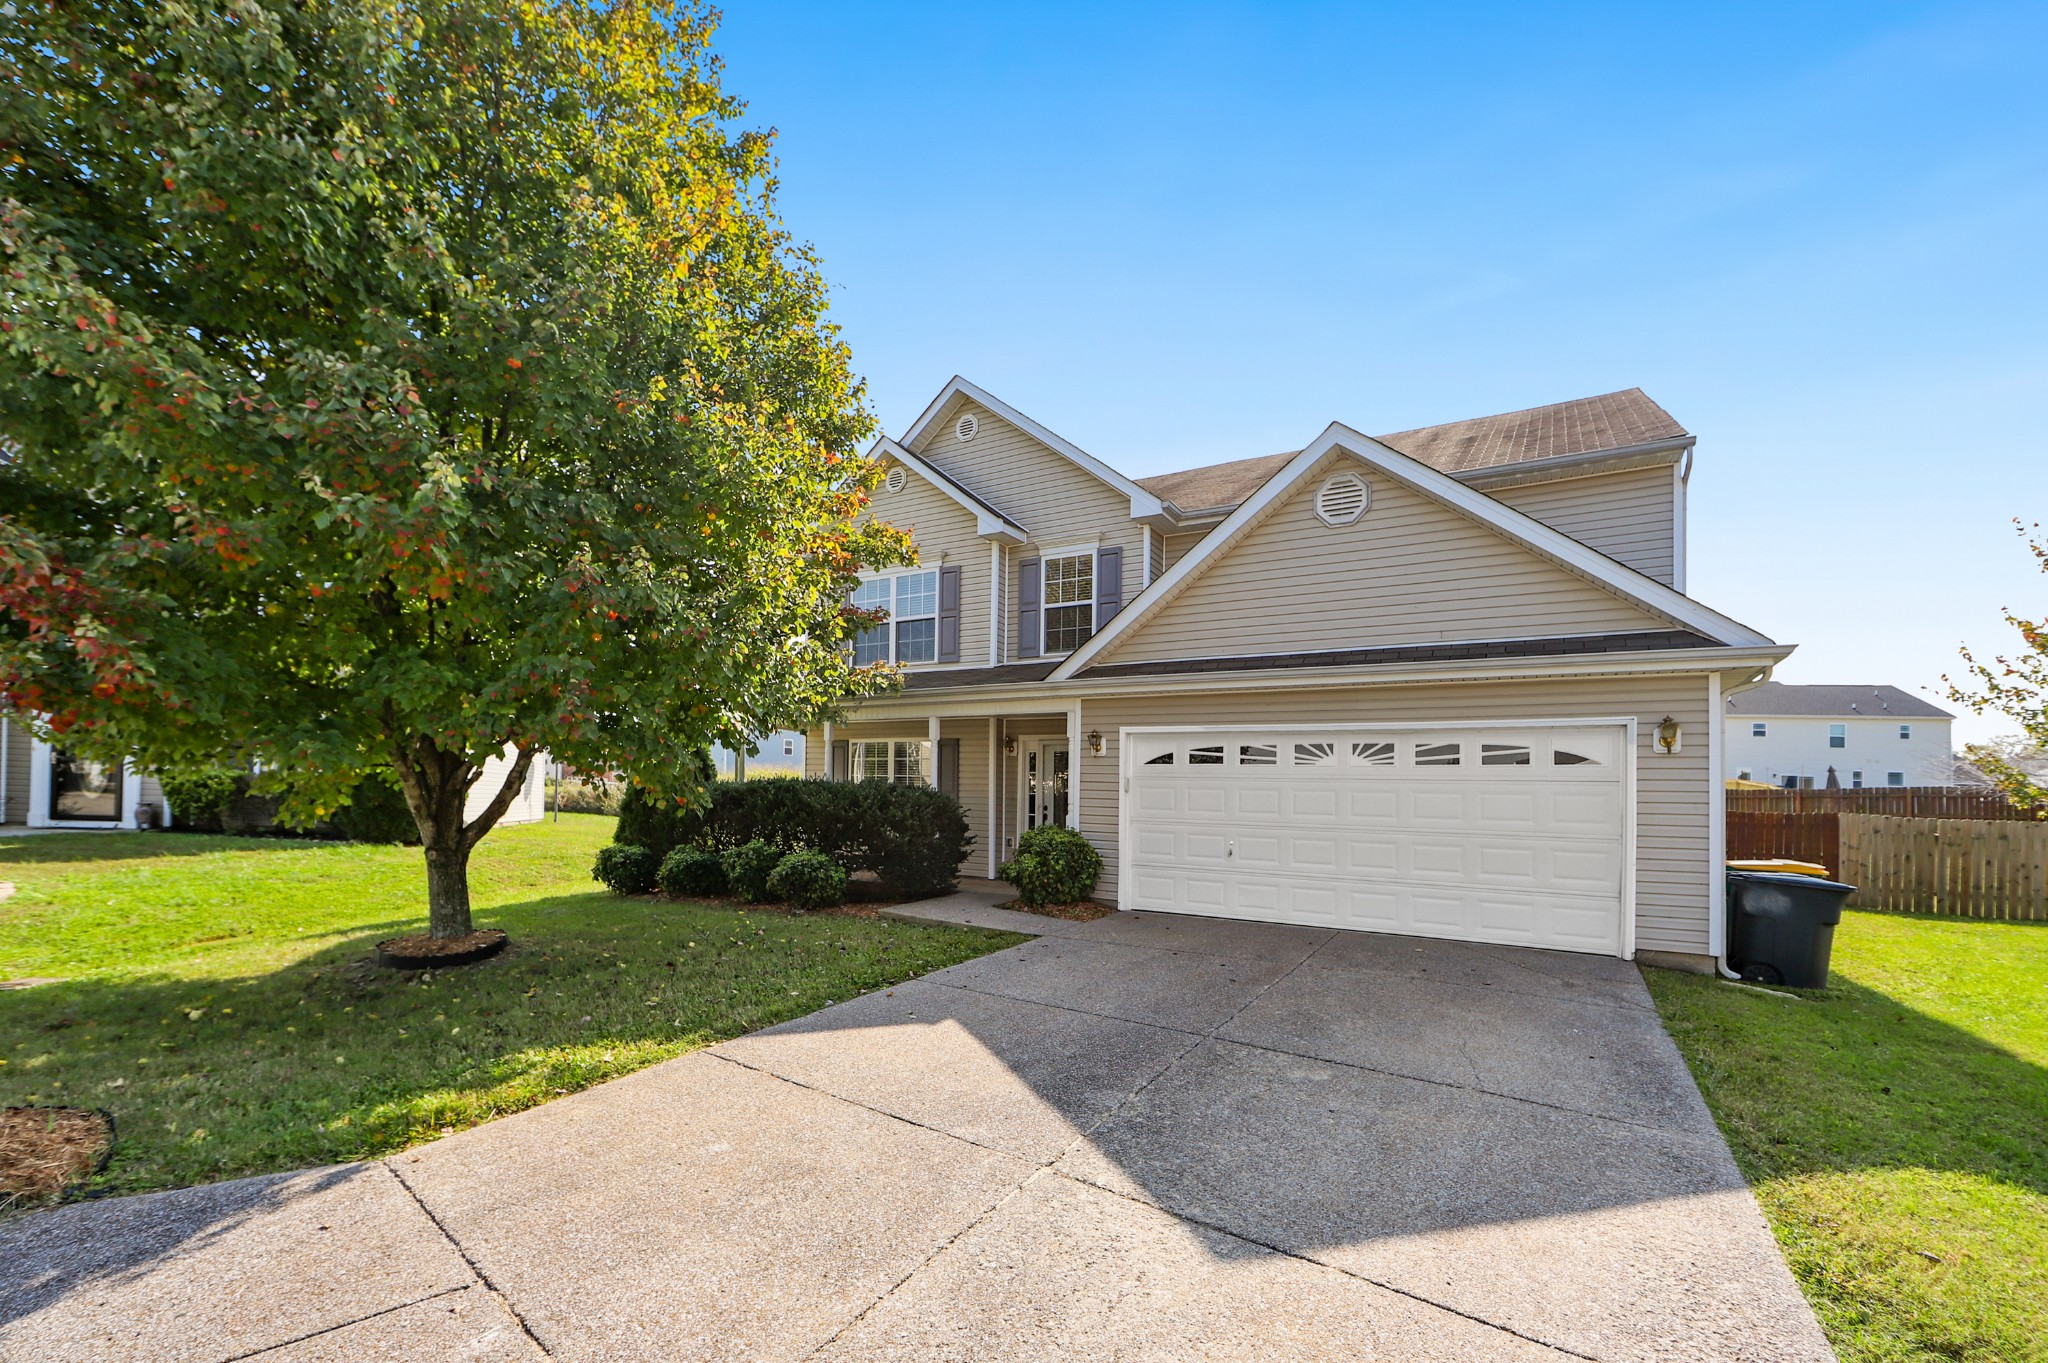 Location! 4 BR + office in the heart of Spring Hill! Cul-de-sac w/ large, Fenced yard. Brand New carpet, 2 Fireplaces (gas), huge master bedroom w/ upgrade bath & spacious closet! Cherry -to ceiling -kitchen cabinets, appliances remain. Garage has attic storage.